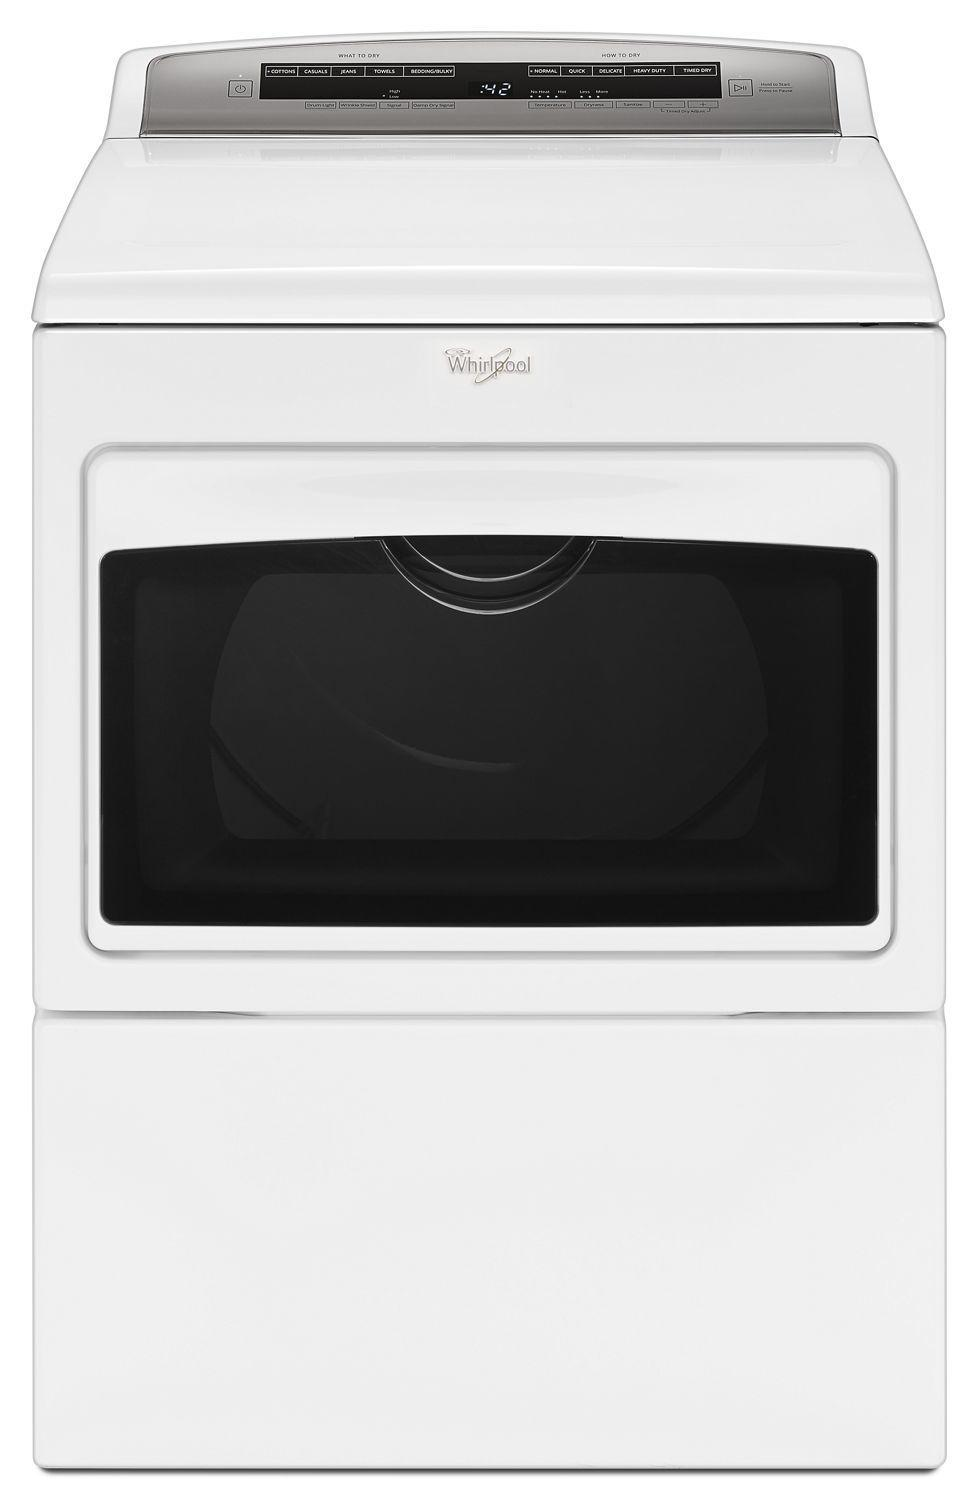 Whirlpool7.4 Cu.Ft Top Load He Gas Dryer With Accudry , Intuitive Touch Controls White